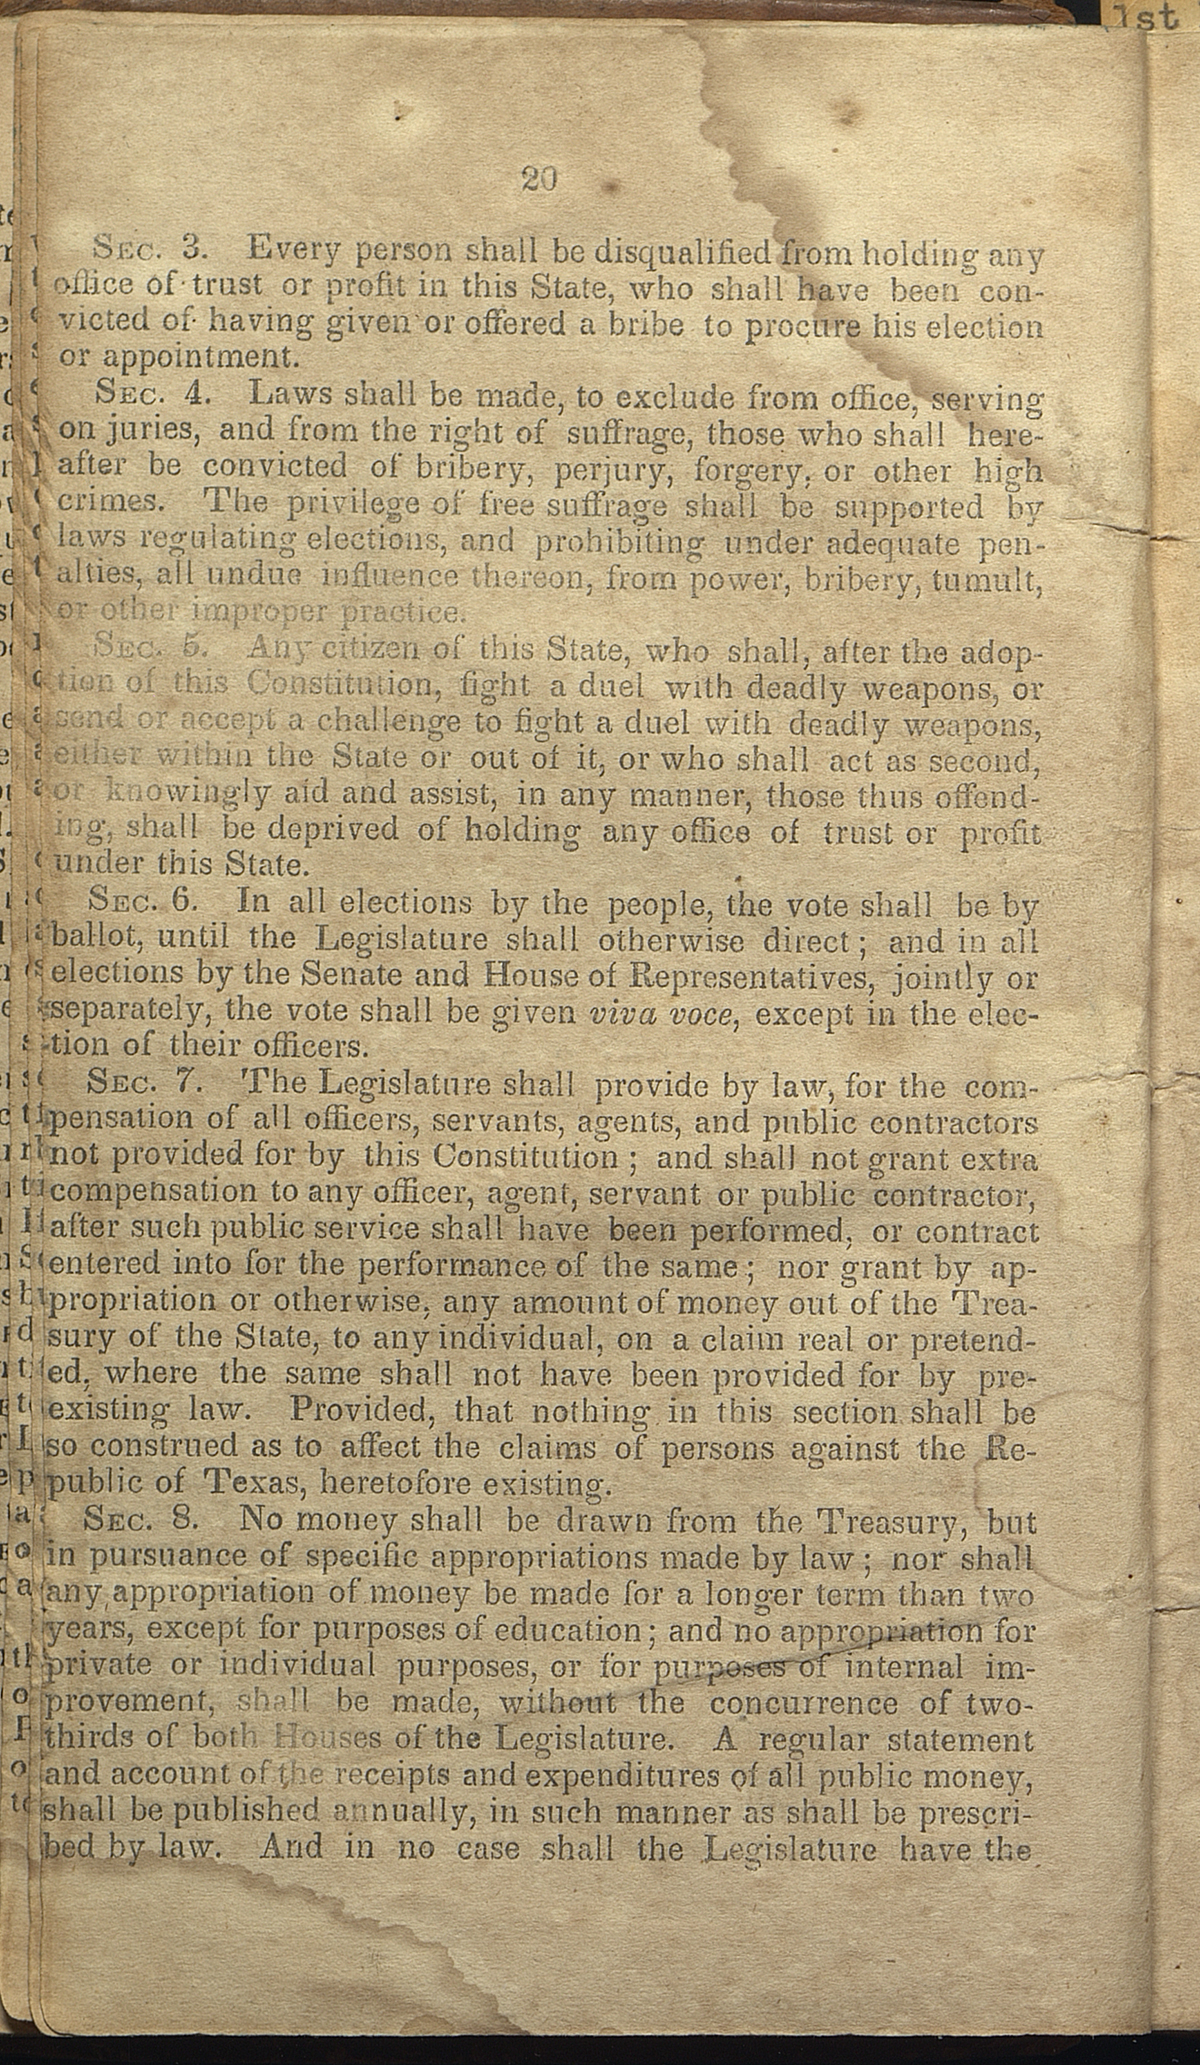 Article VII, Sections 3-8